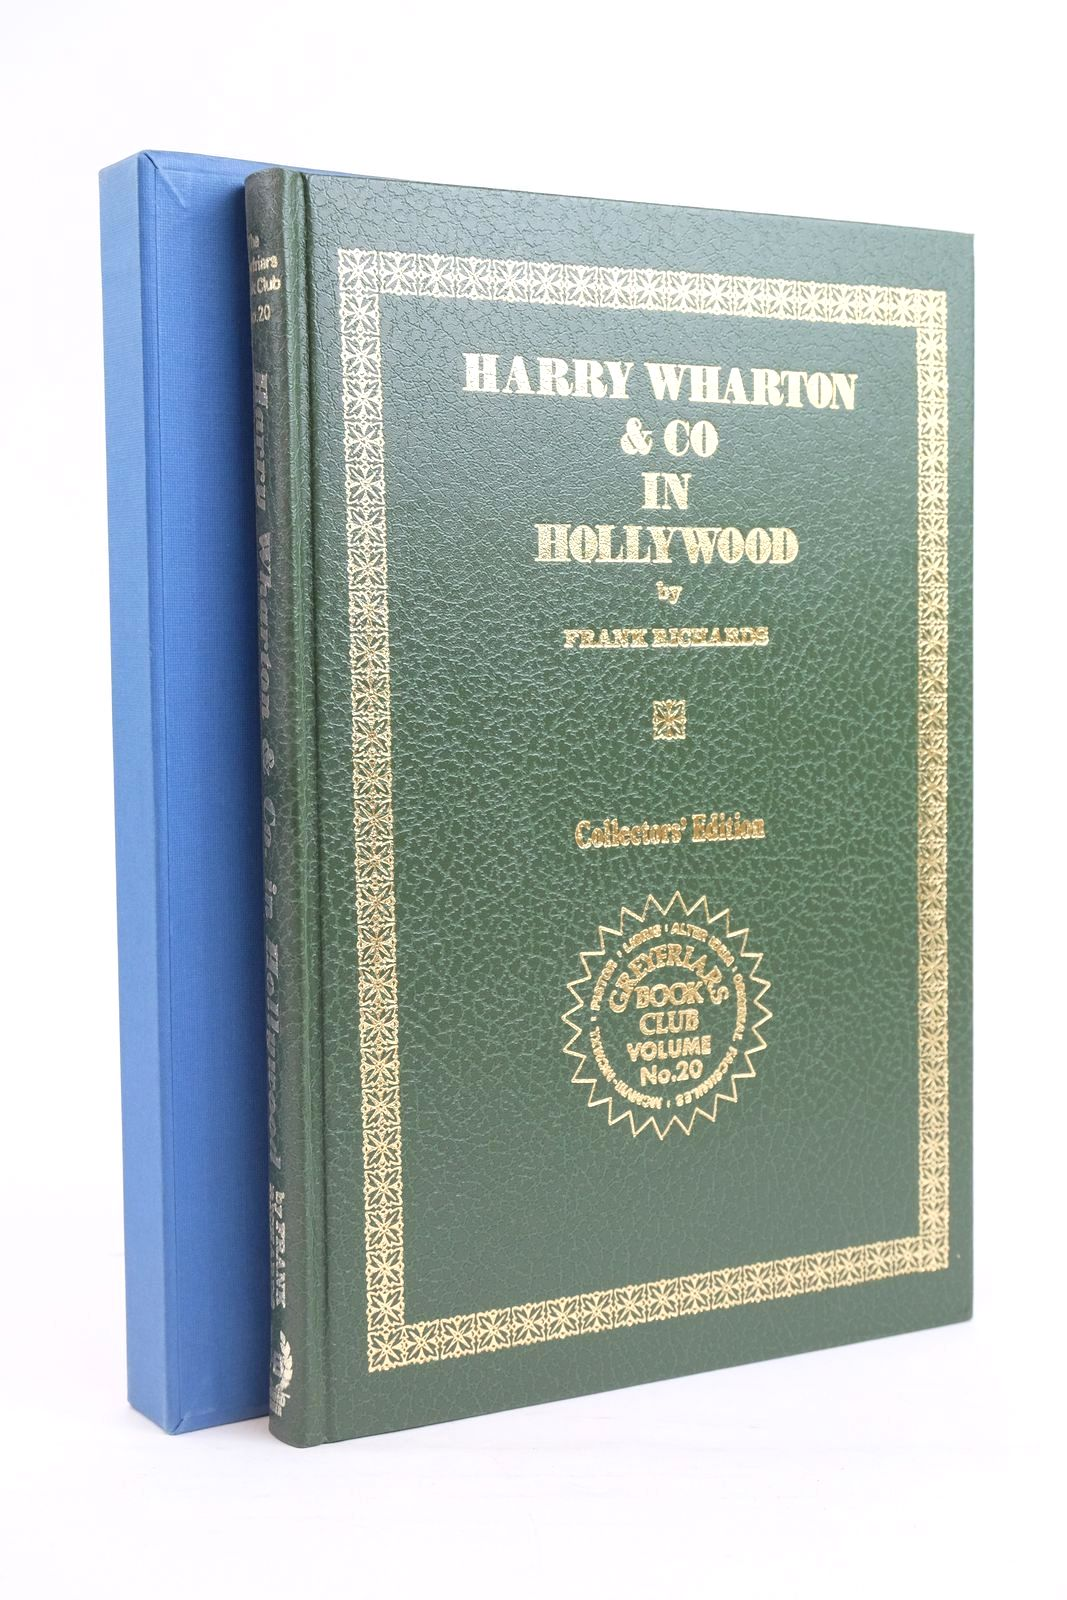 Photo of HARRY WHARTON & CO IN HOLLYWOOD- Stock Number: 1319963